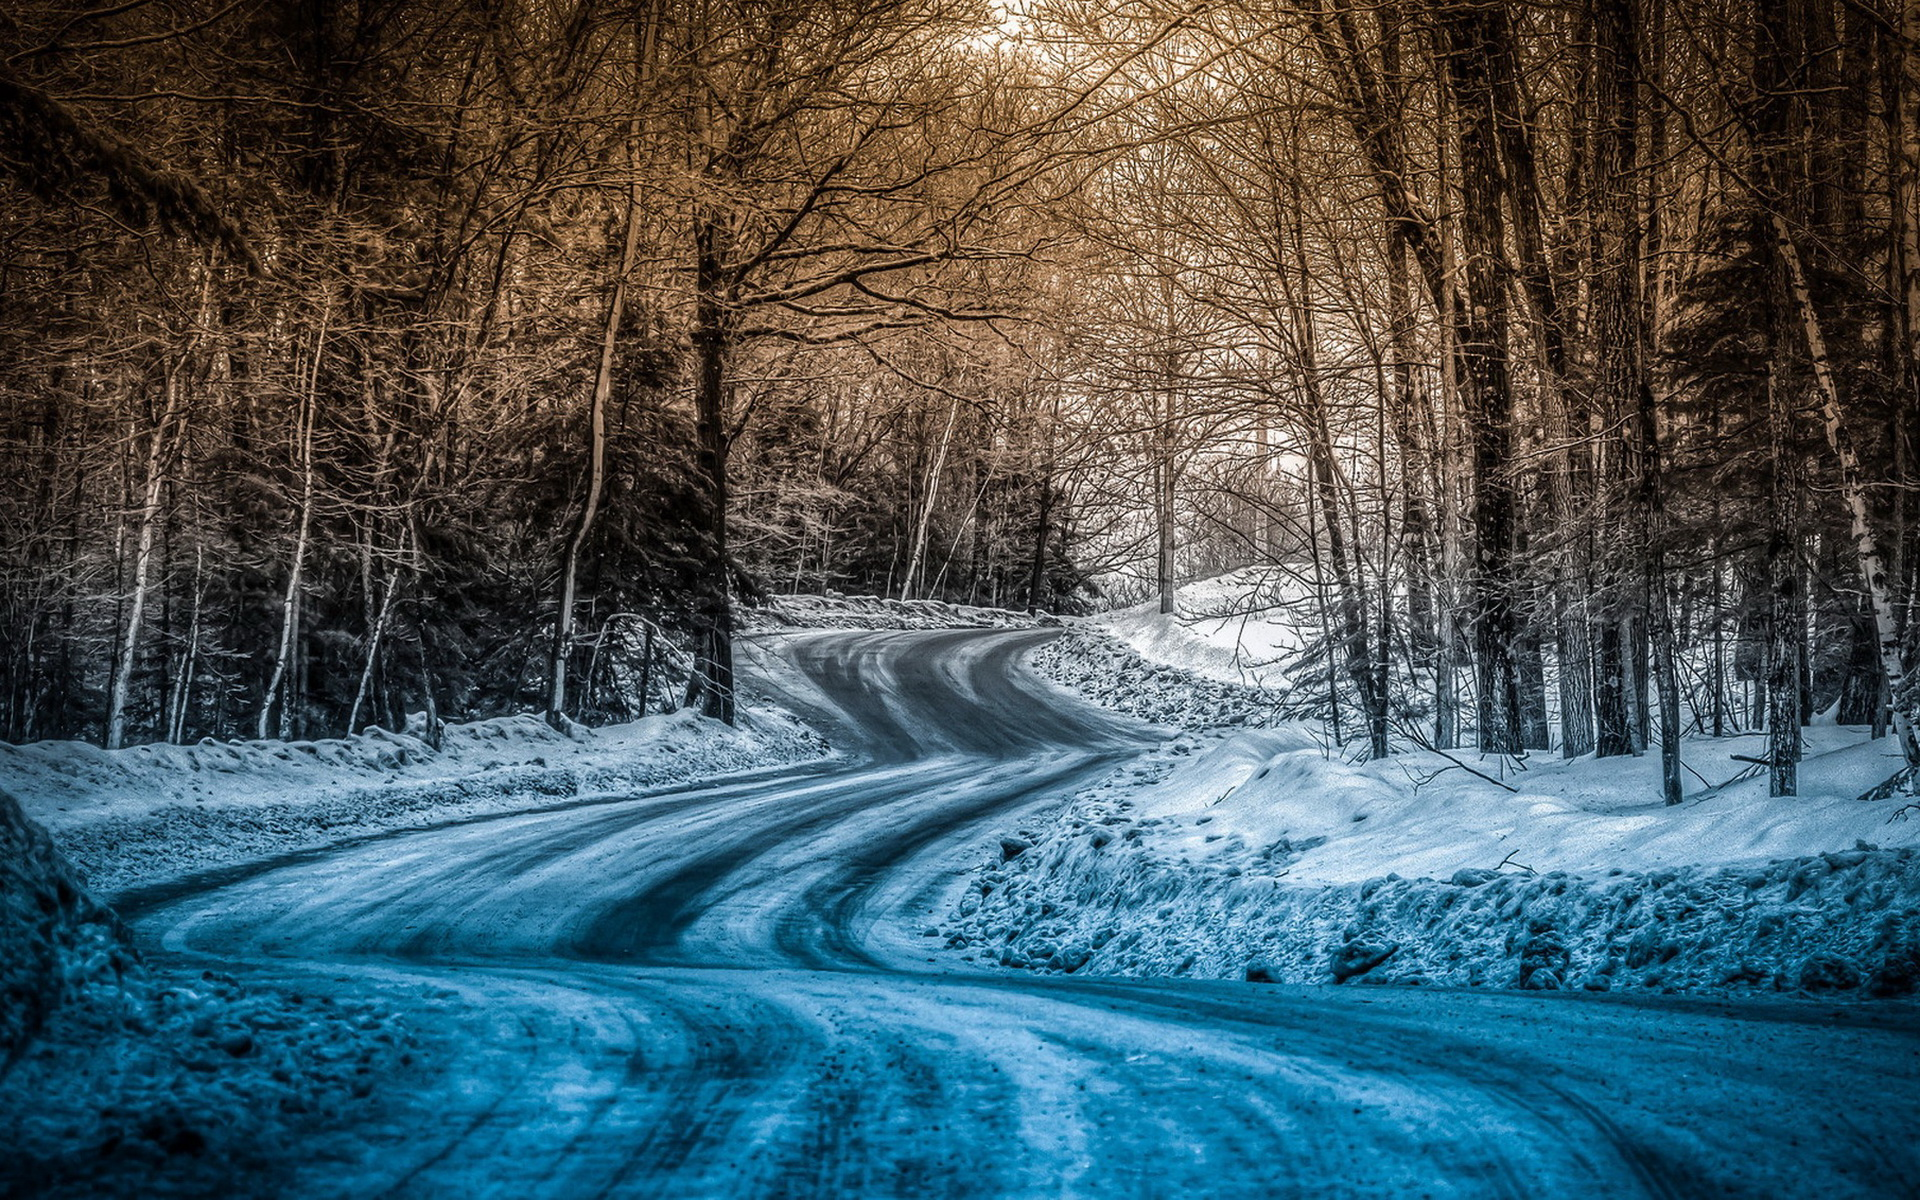 Blue Snow On The Road wallpapers | Blue Snow On The Road stock photos